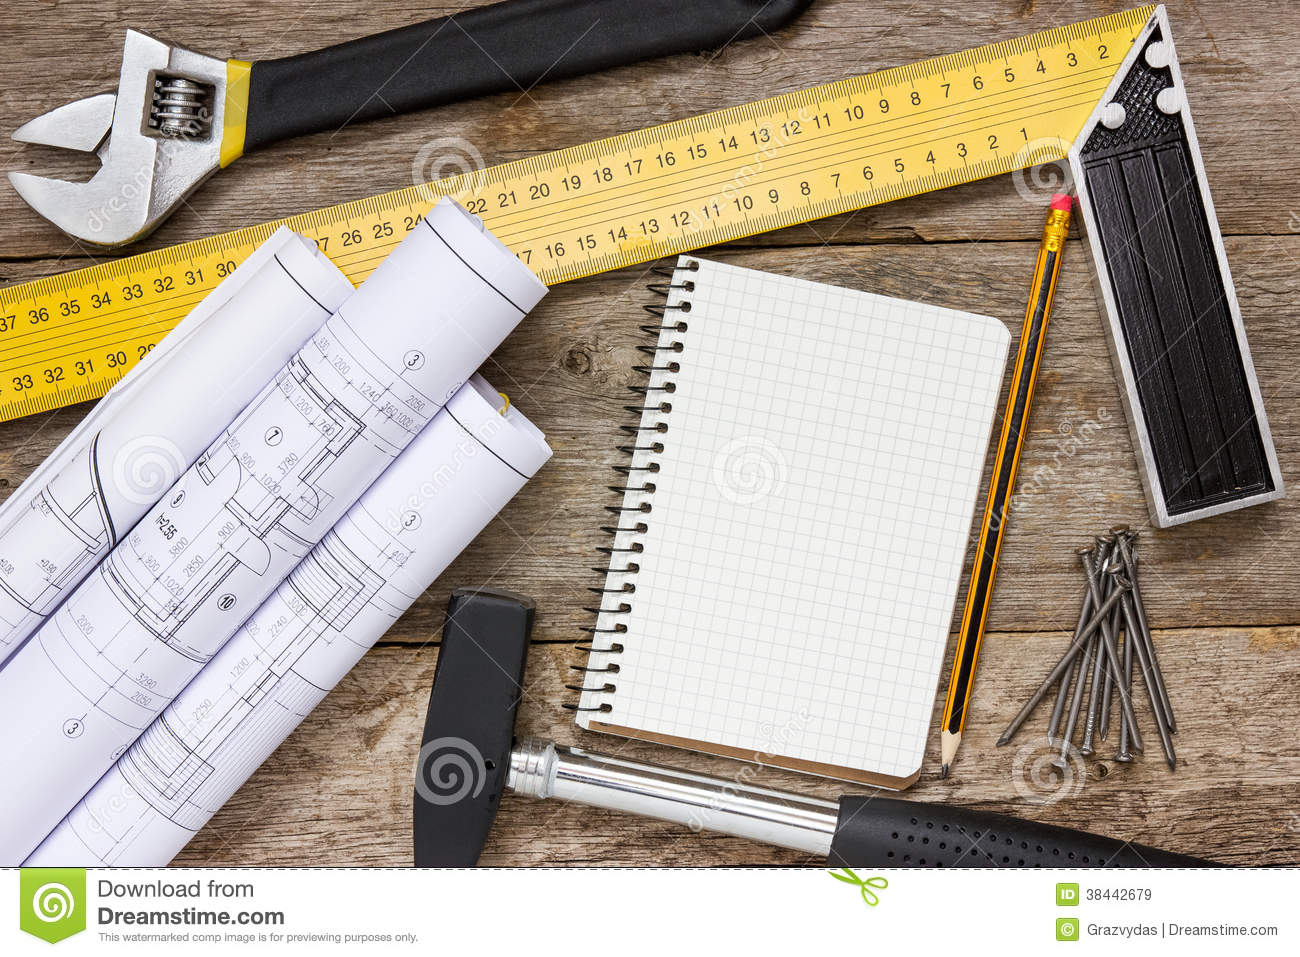 Technical Drawing And Tools With Blank Notebook Stock Image